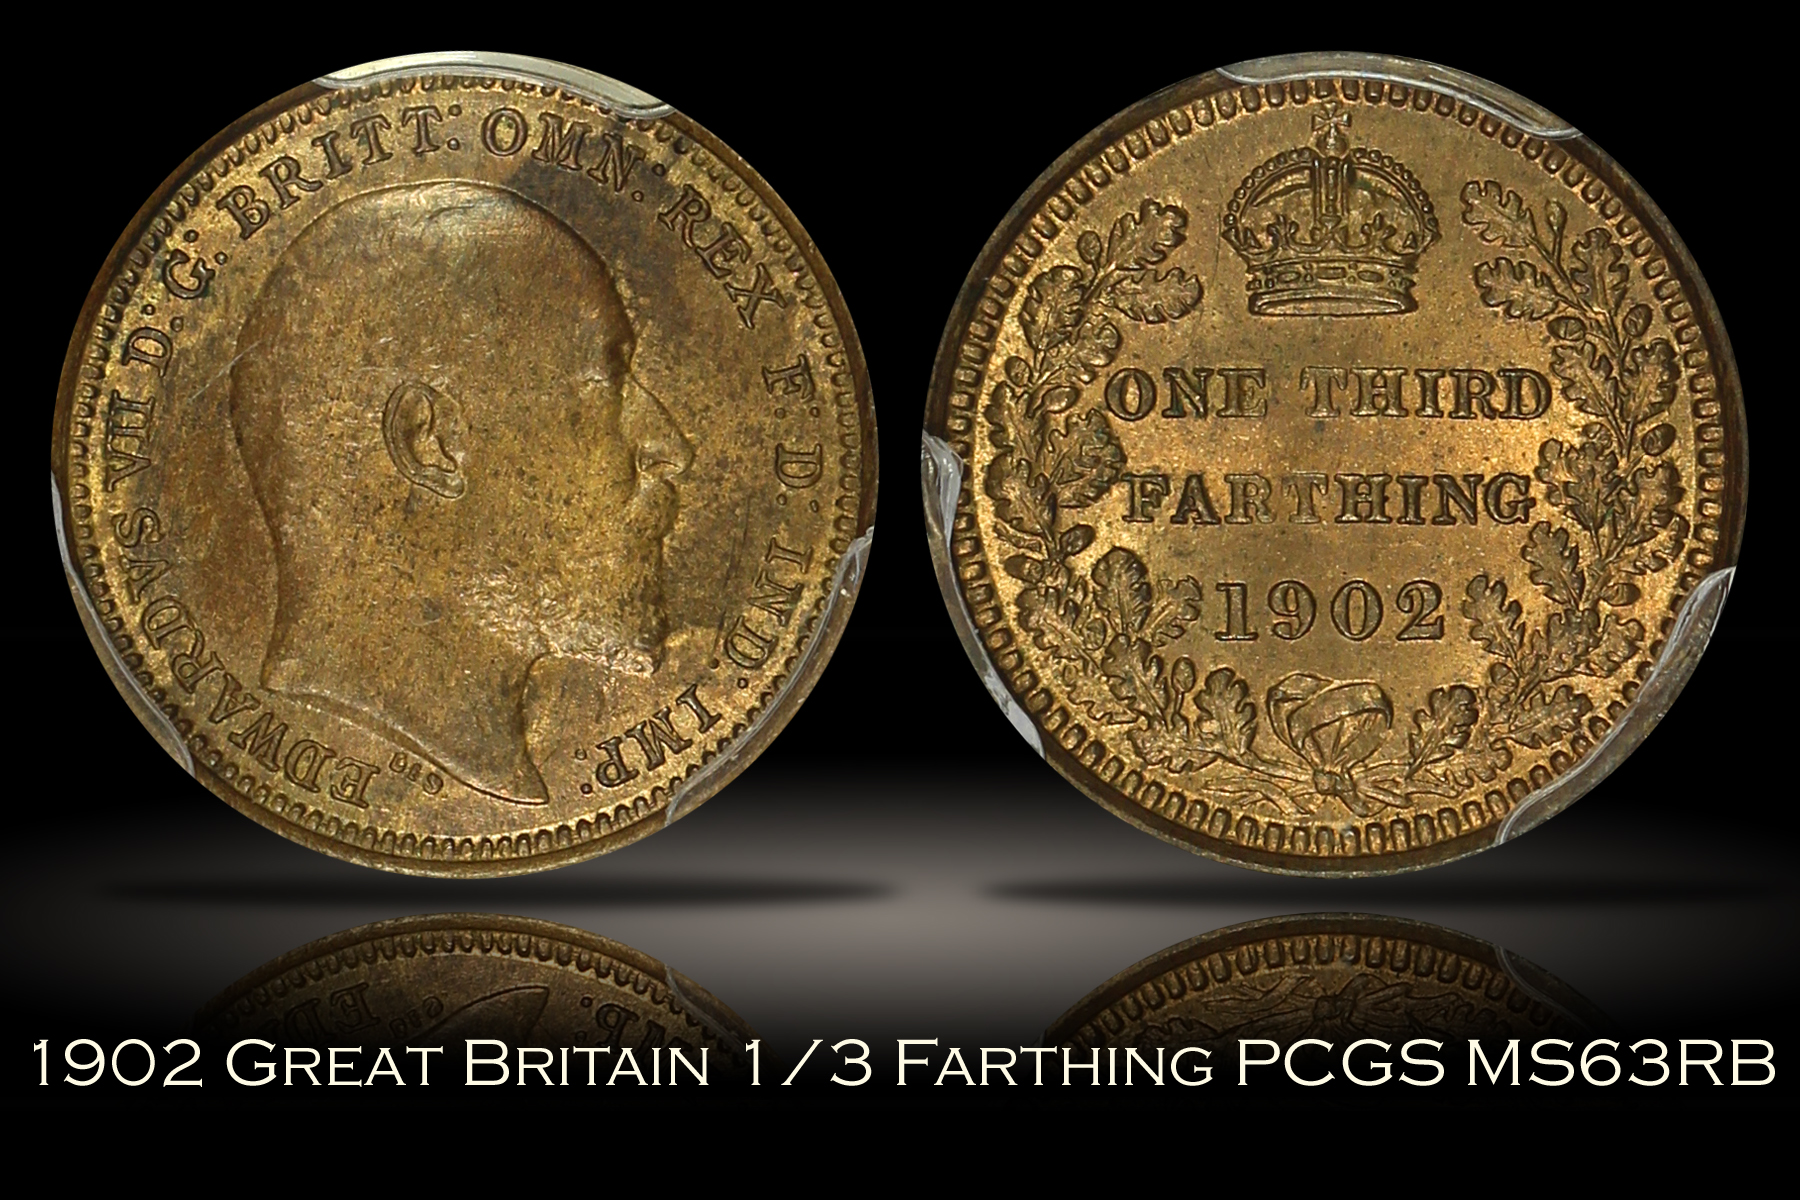 1902 Great Britain 1/3 Farthing PCGS MS63RB